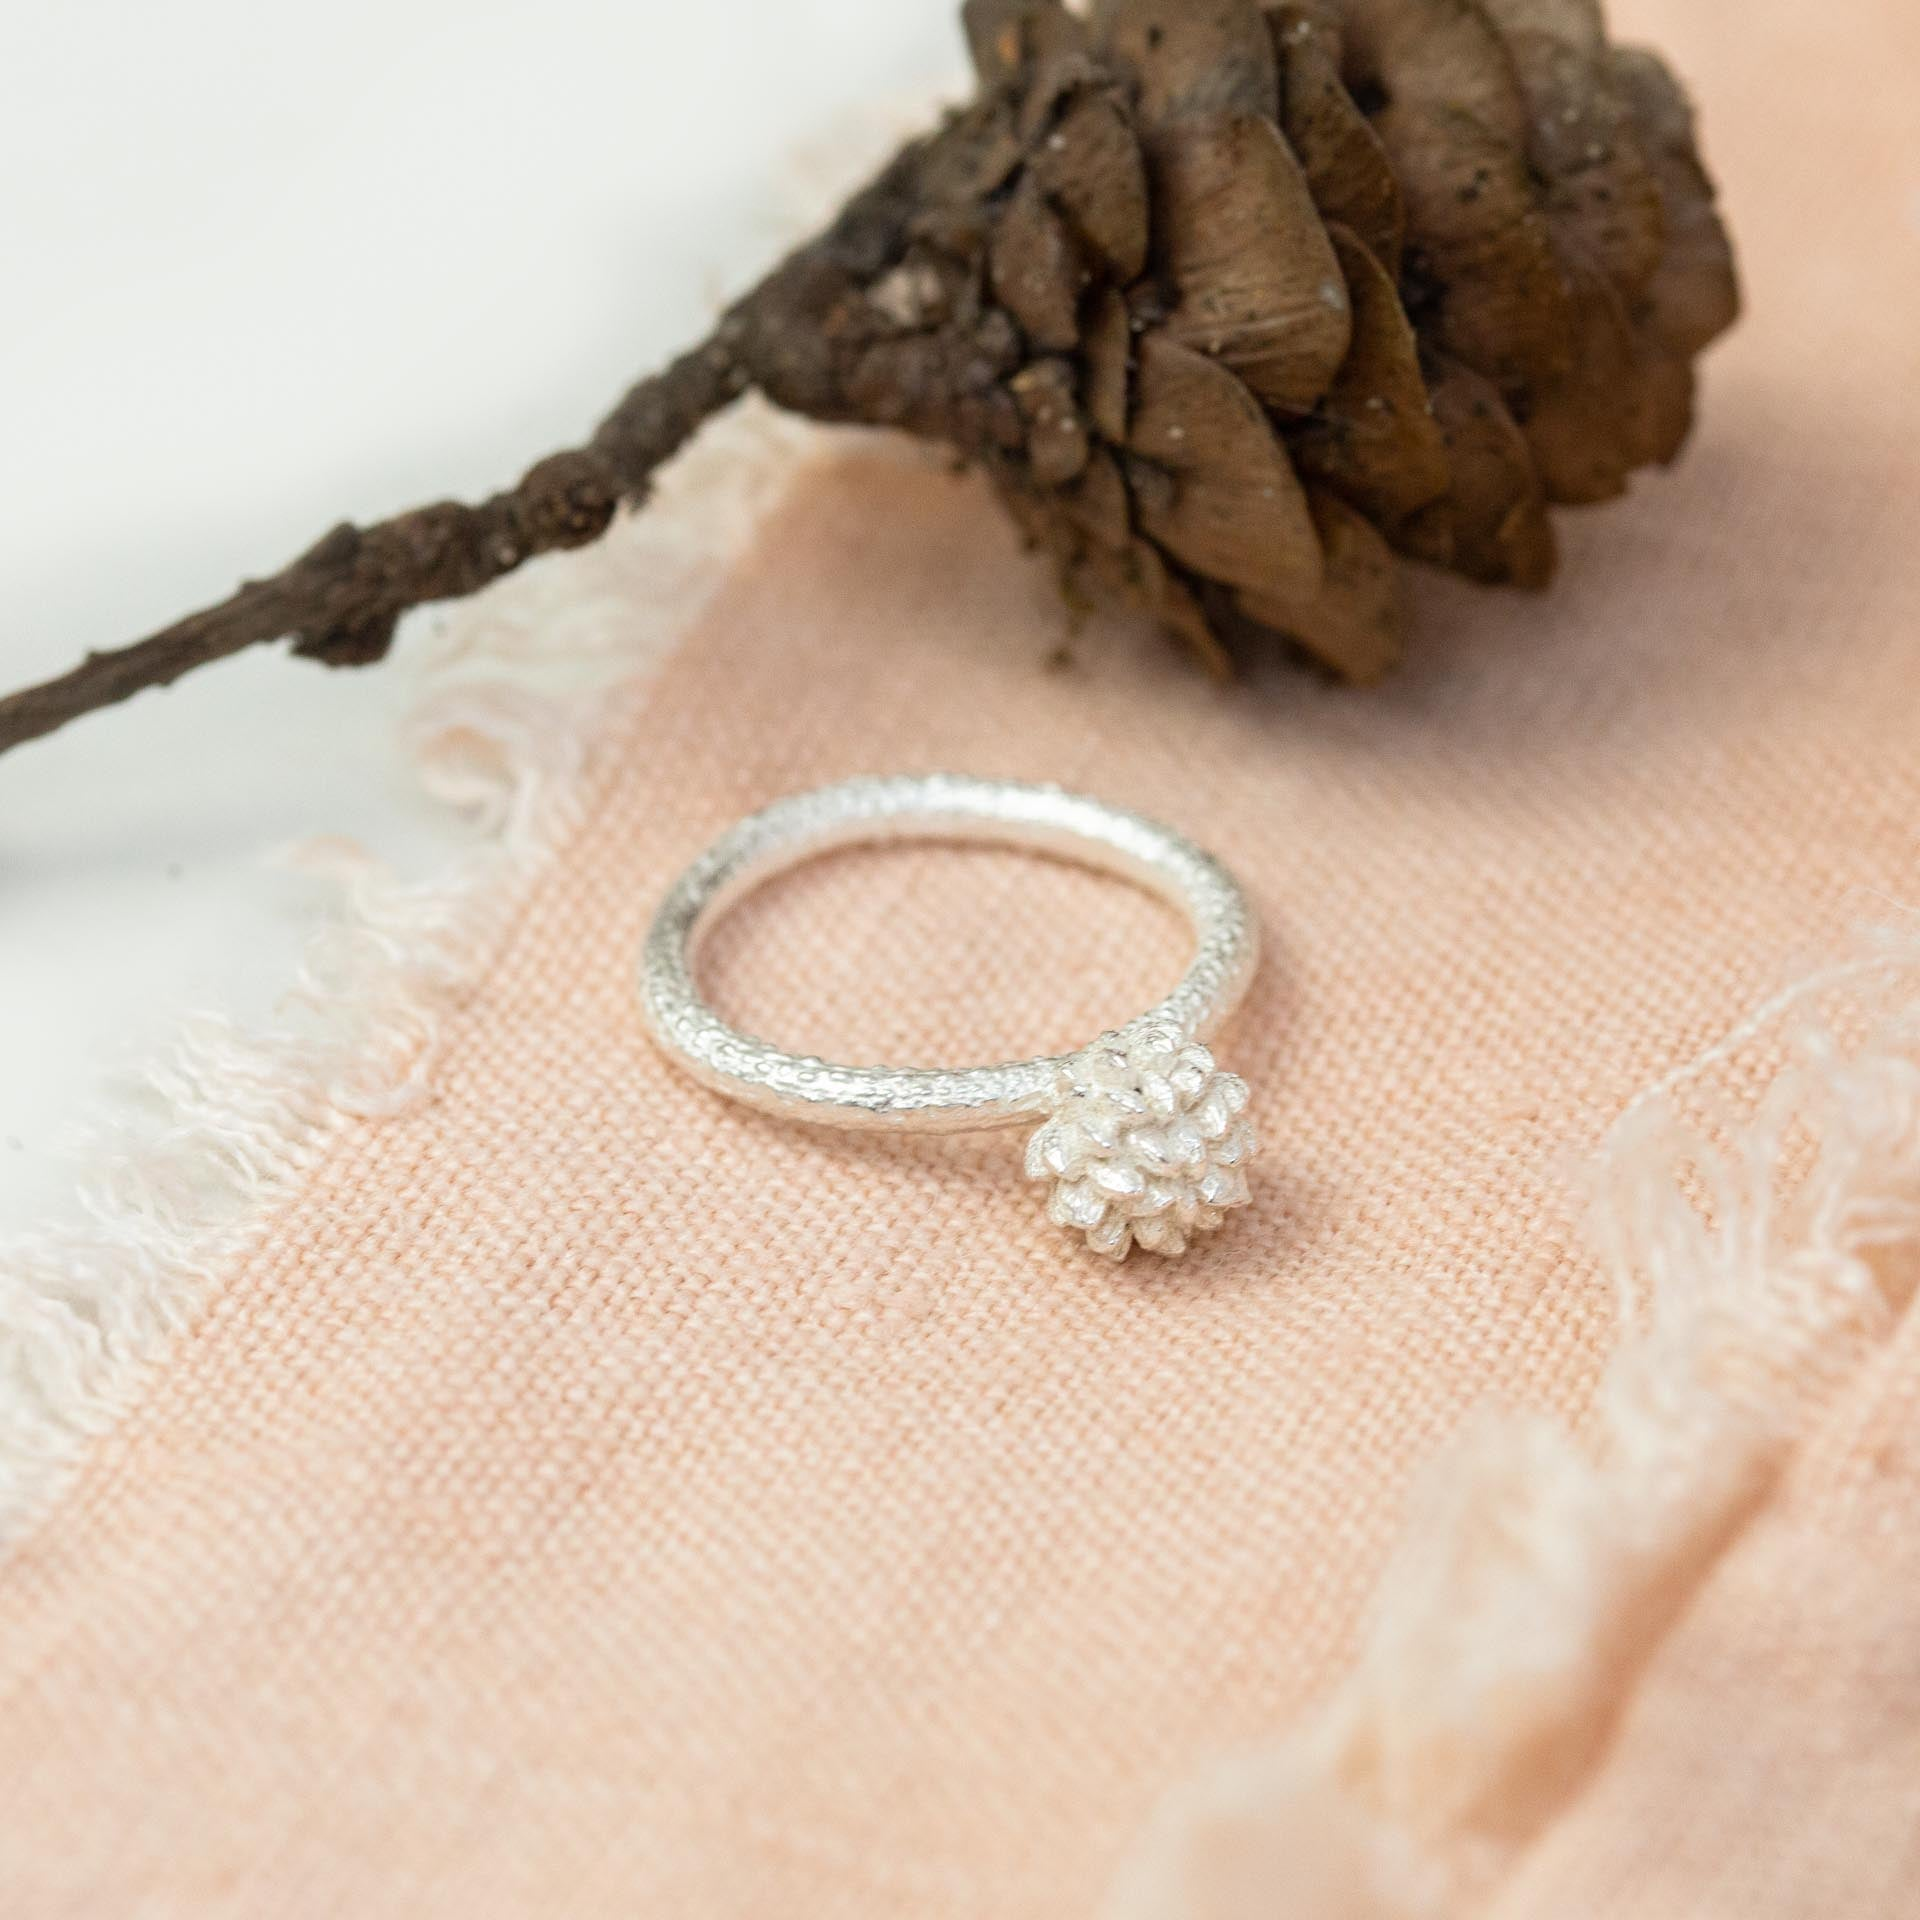 silver buttercup ring on pink cloth near pine cone